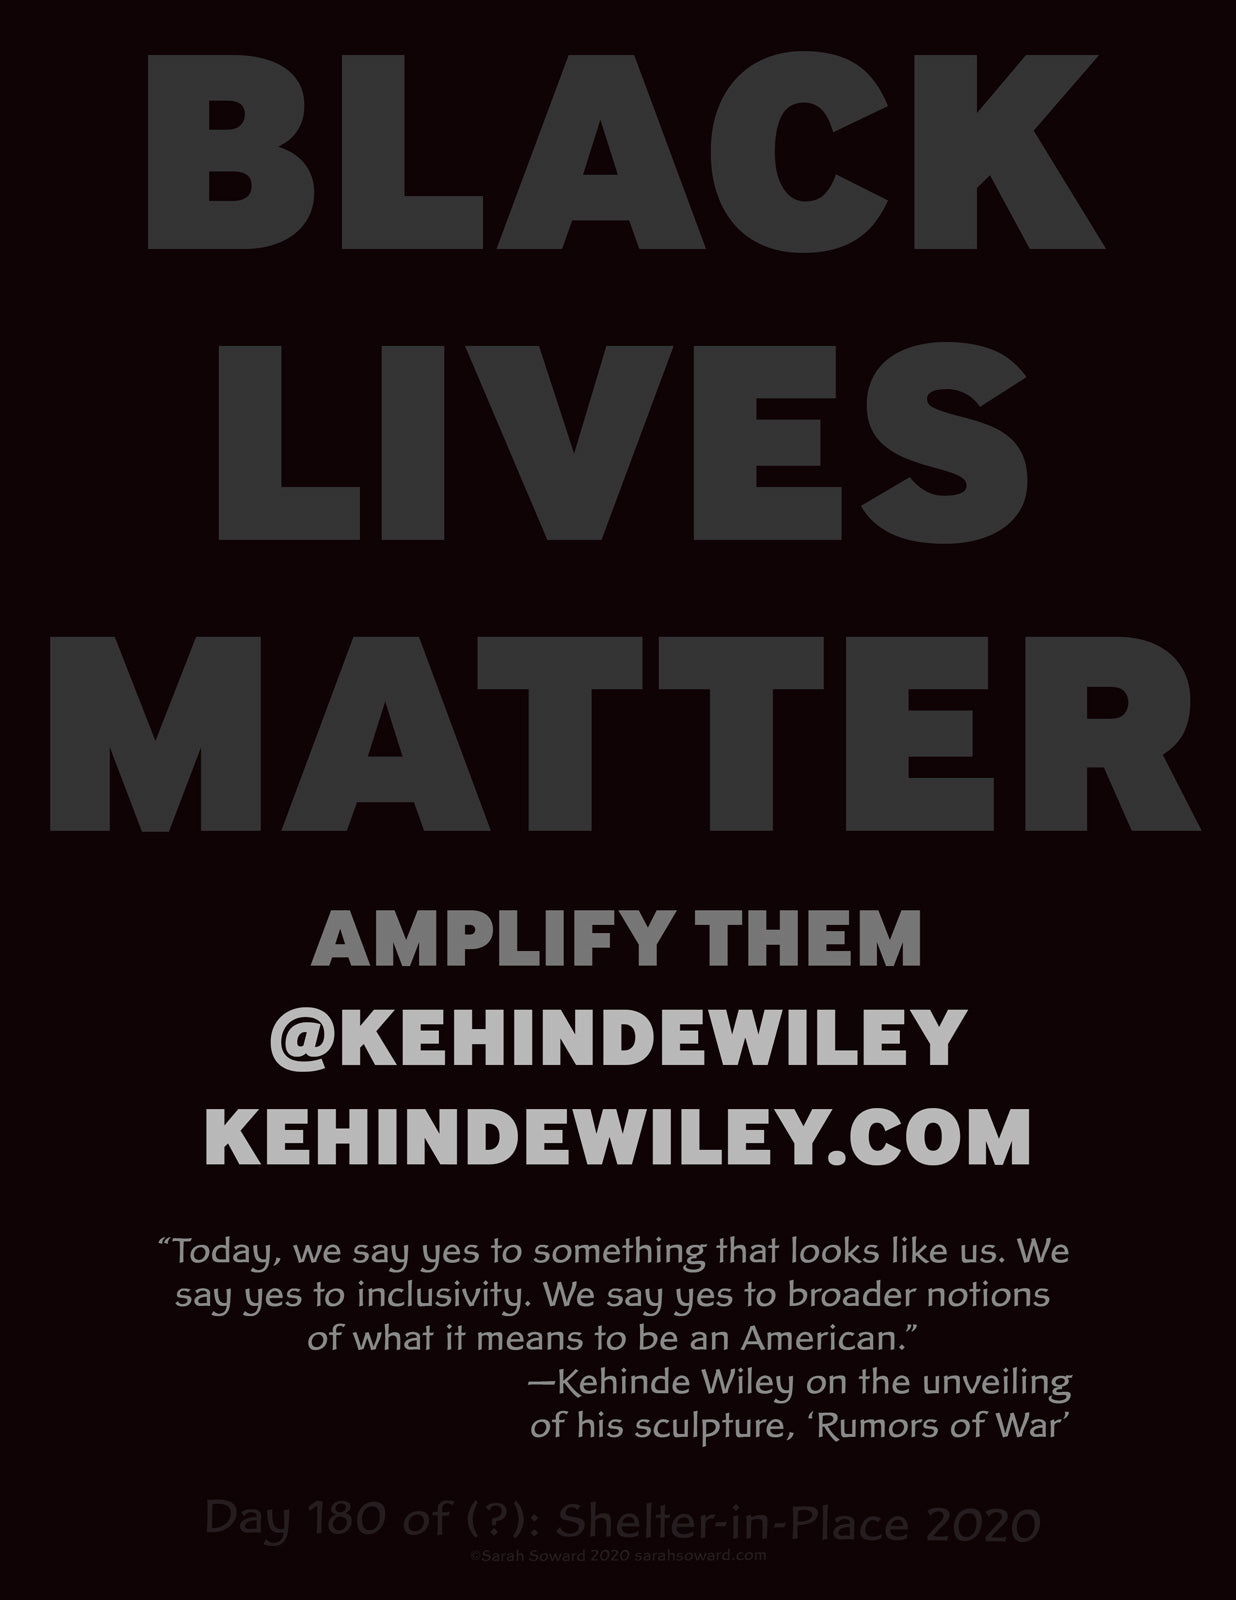 """This is a text based image. The text on the image reads  Black Lives Matter Amplify Them @kehindewiley kehindewiley.com  """"Today, we say yes to something that looks like us. We say yes to inclusivity. We say yes to broader notions of what it means to be an American.""""—Kehinde Wiley on the unveiling of his sculpture, 'Rumors of War'"""